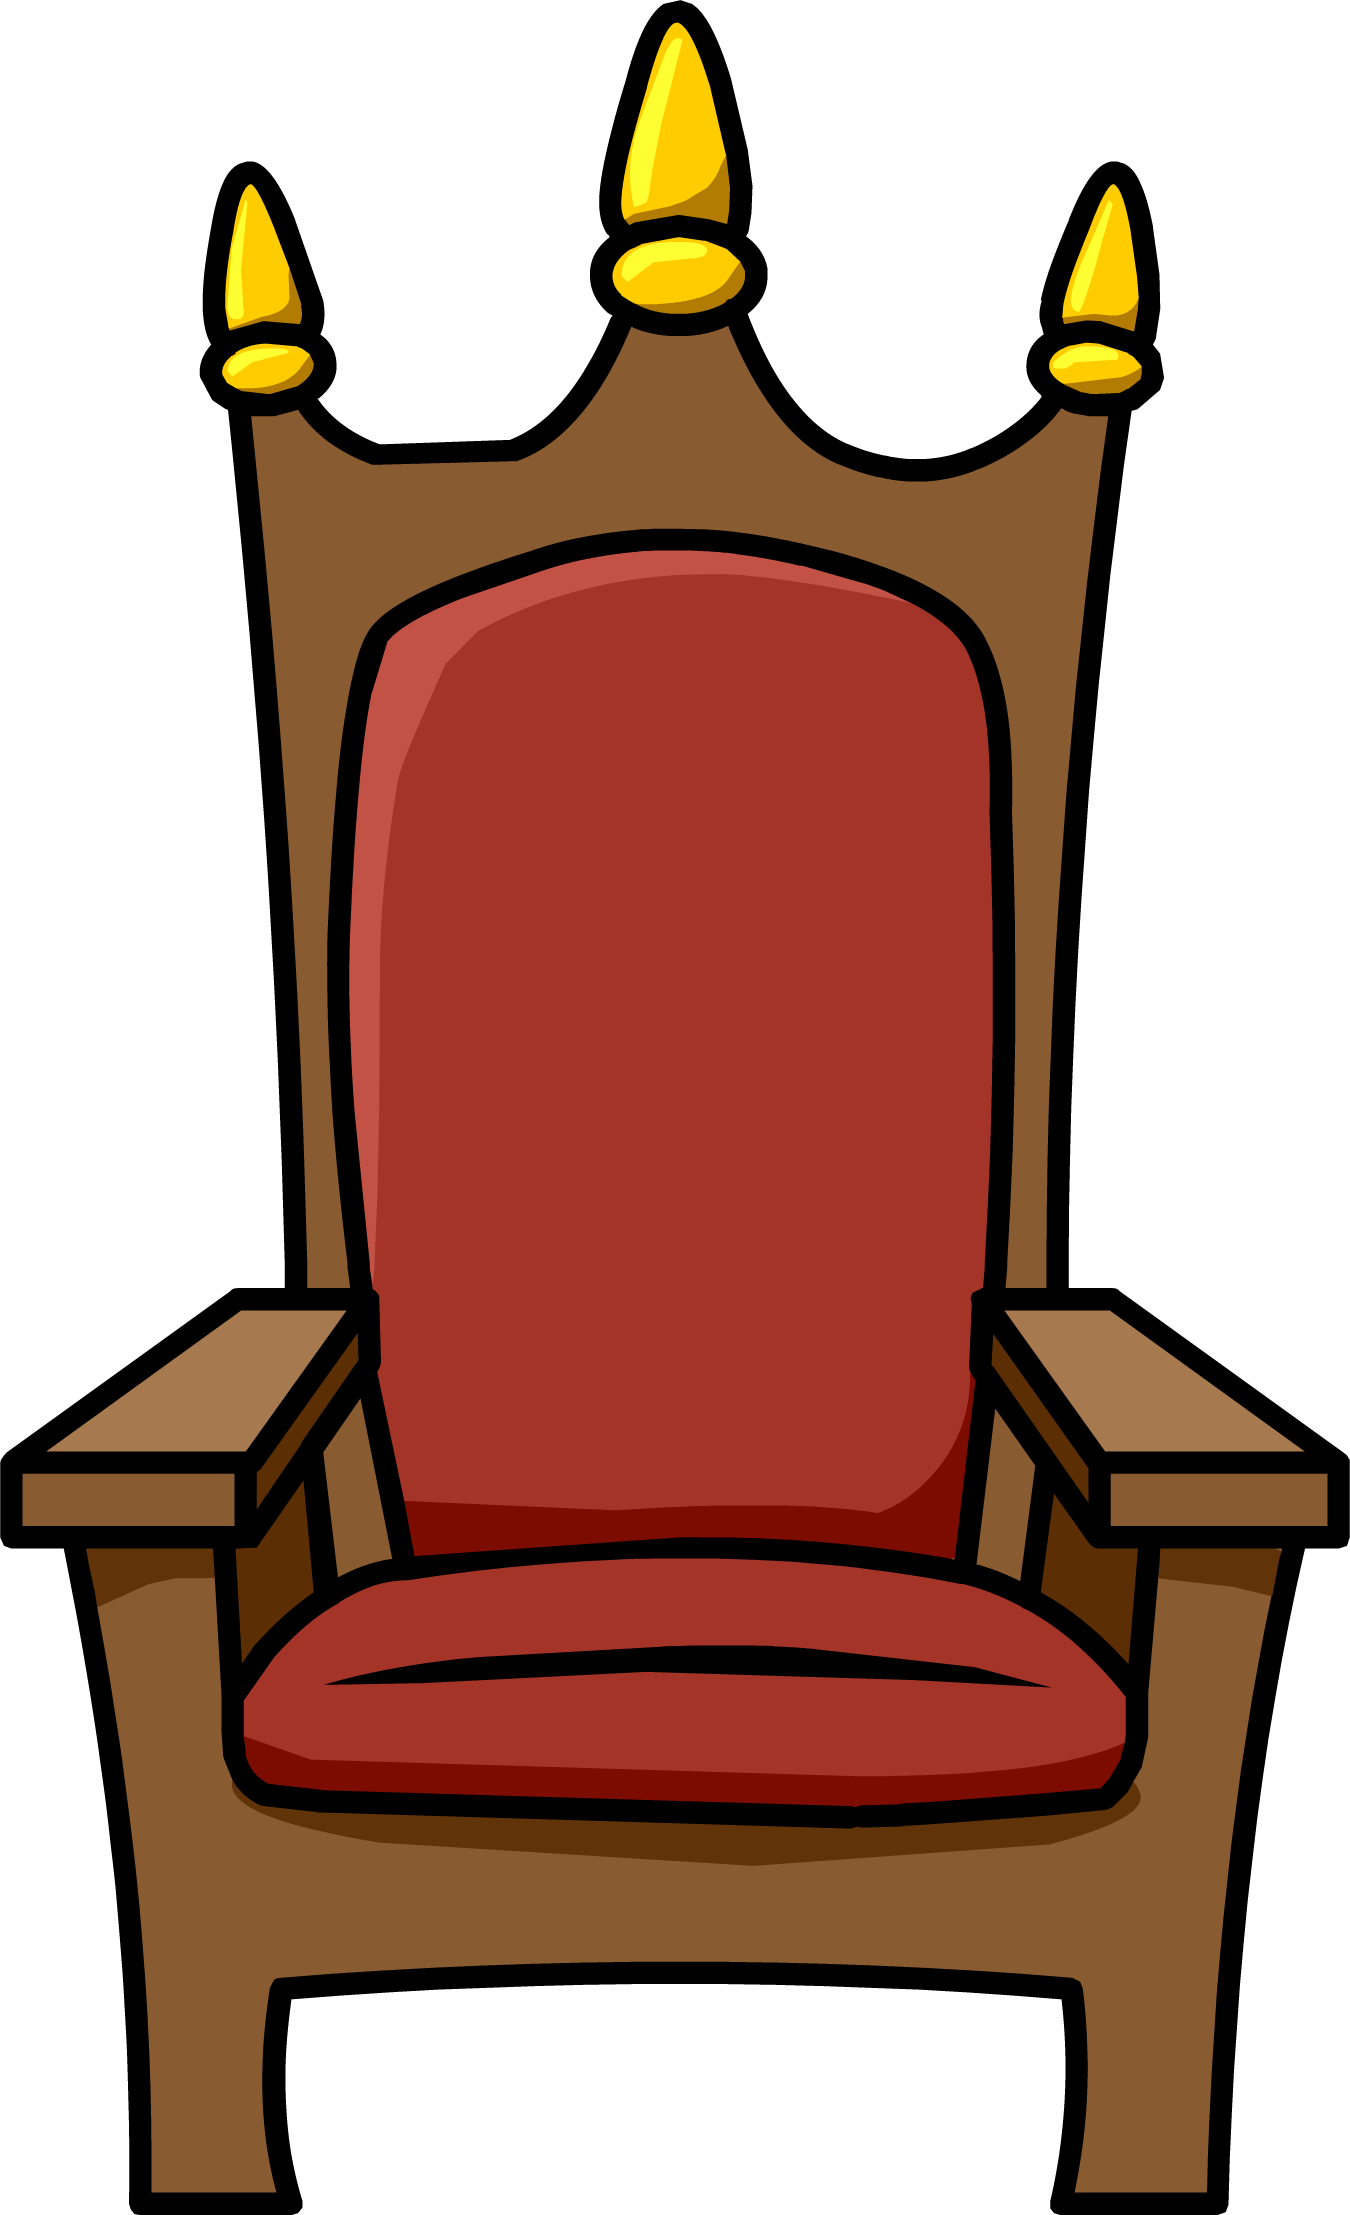 Royal Throne File:royal | Clipart Panda - Free Clipart Images